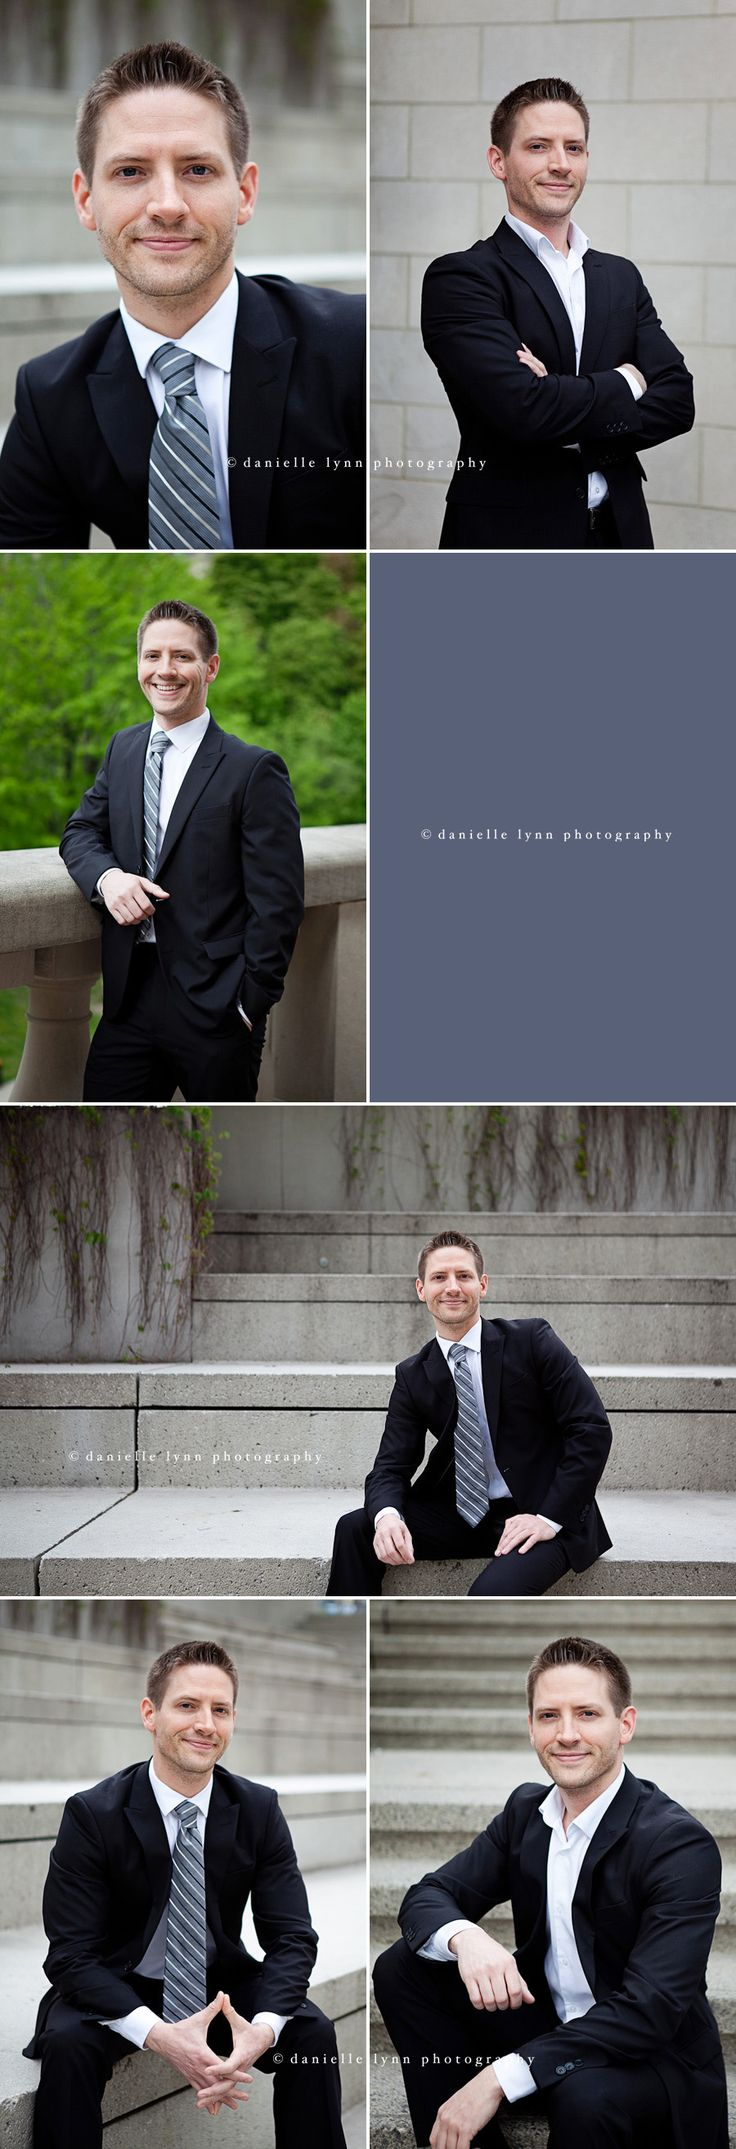 Men's Professional Headshots by Danielle Lynn Photography in #Ottawa